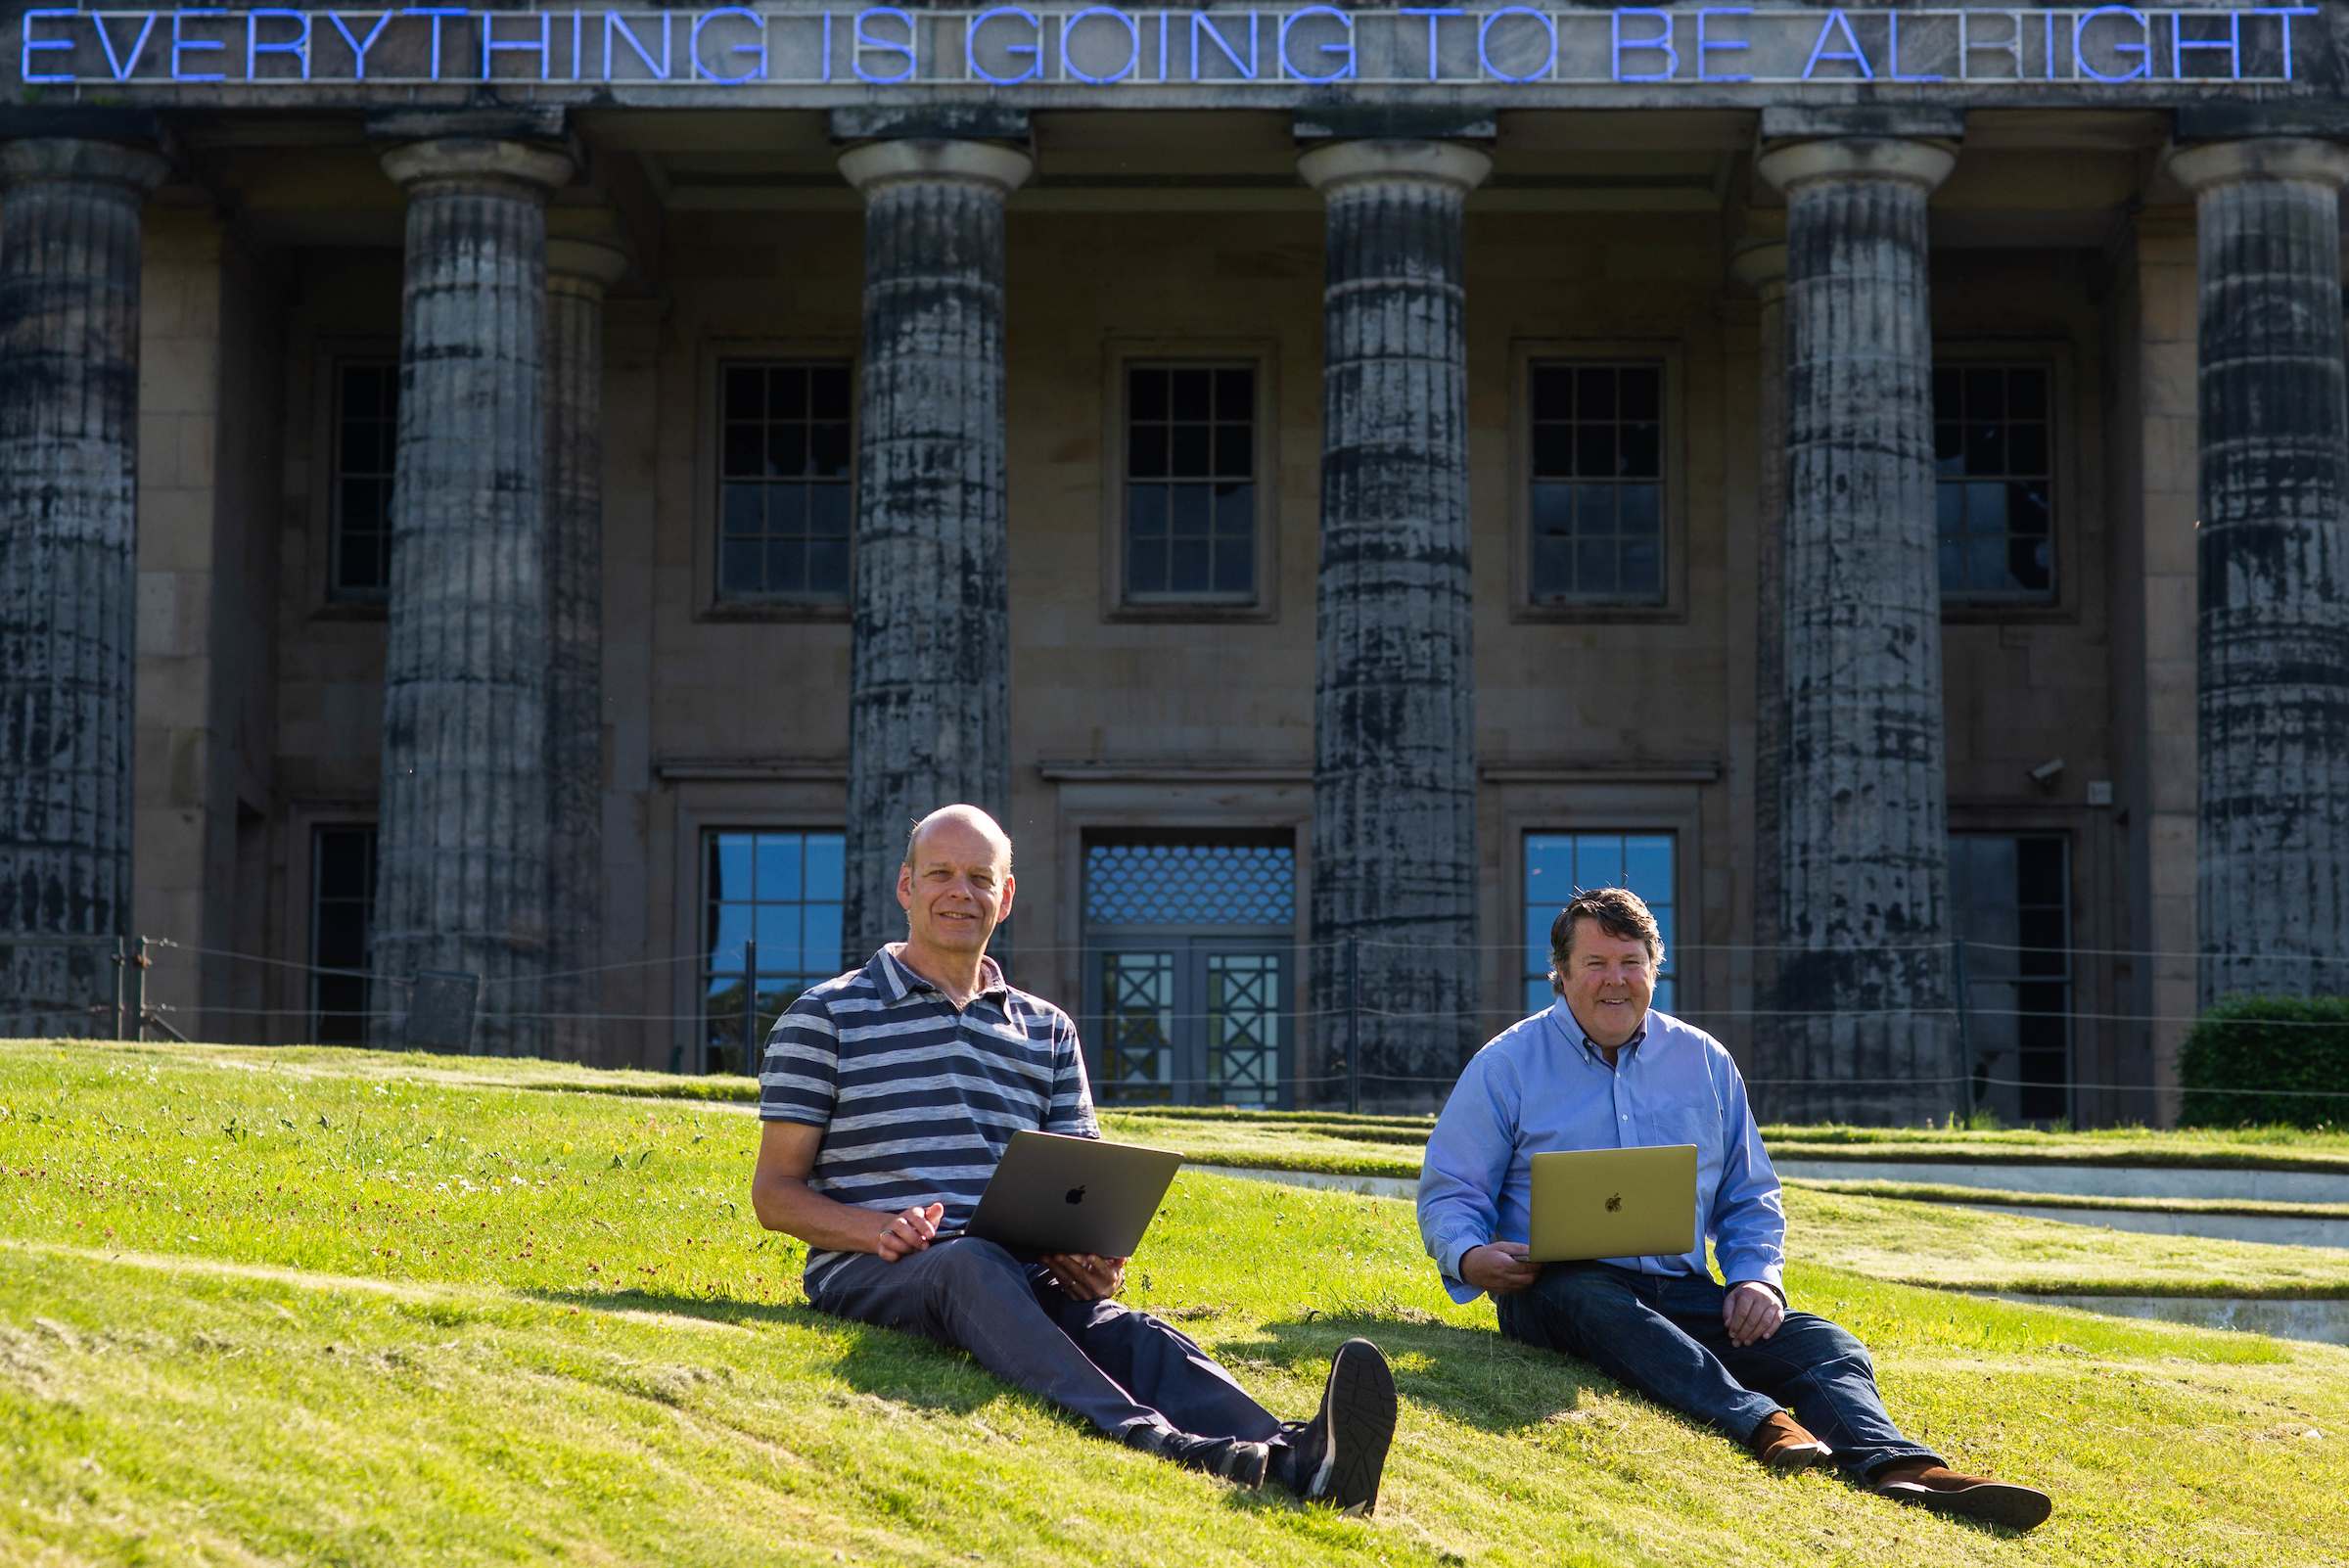 Scottish Tech Army founders Alistair Forbes and Peter Jaco